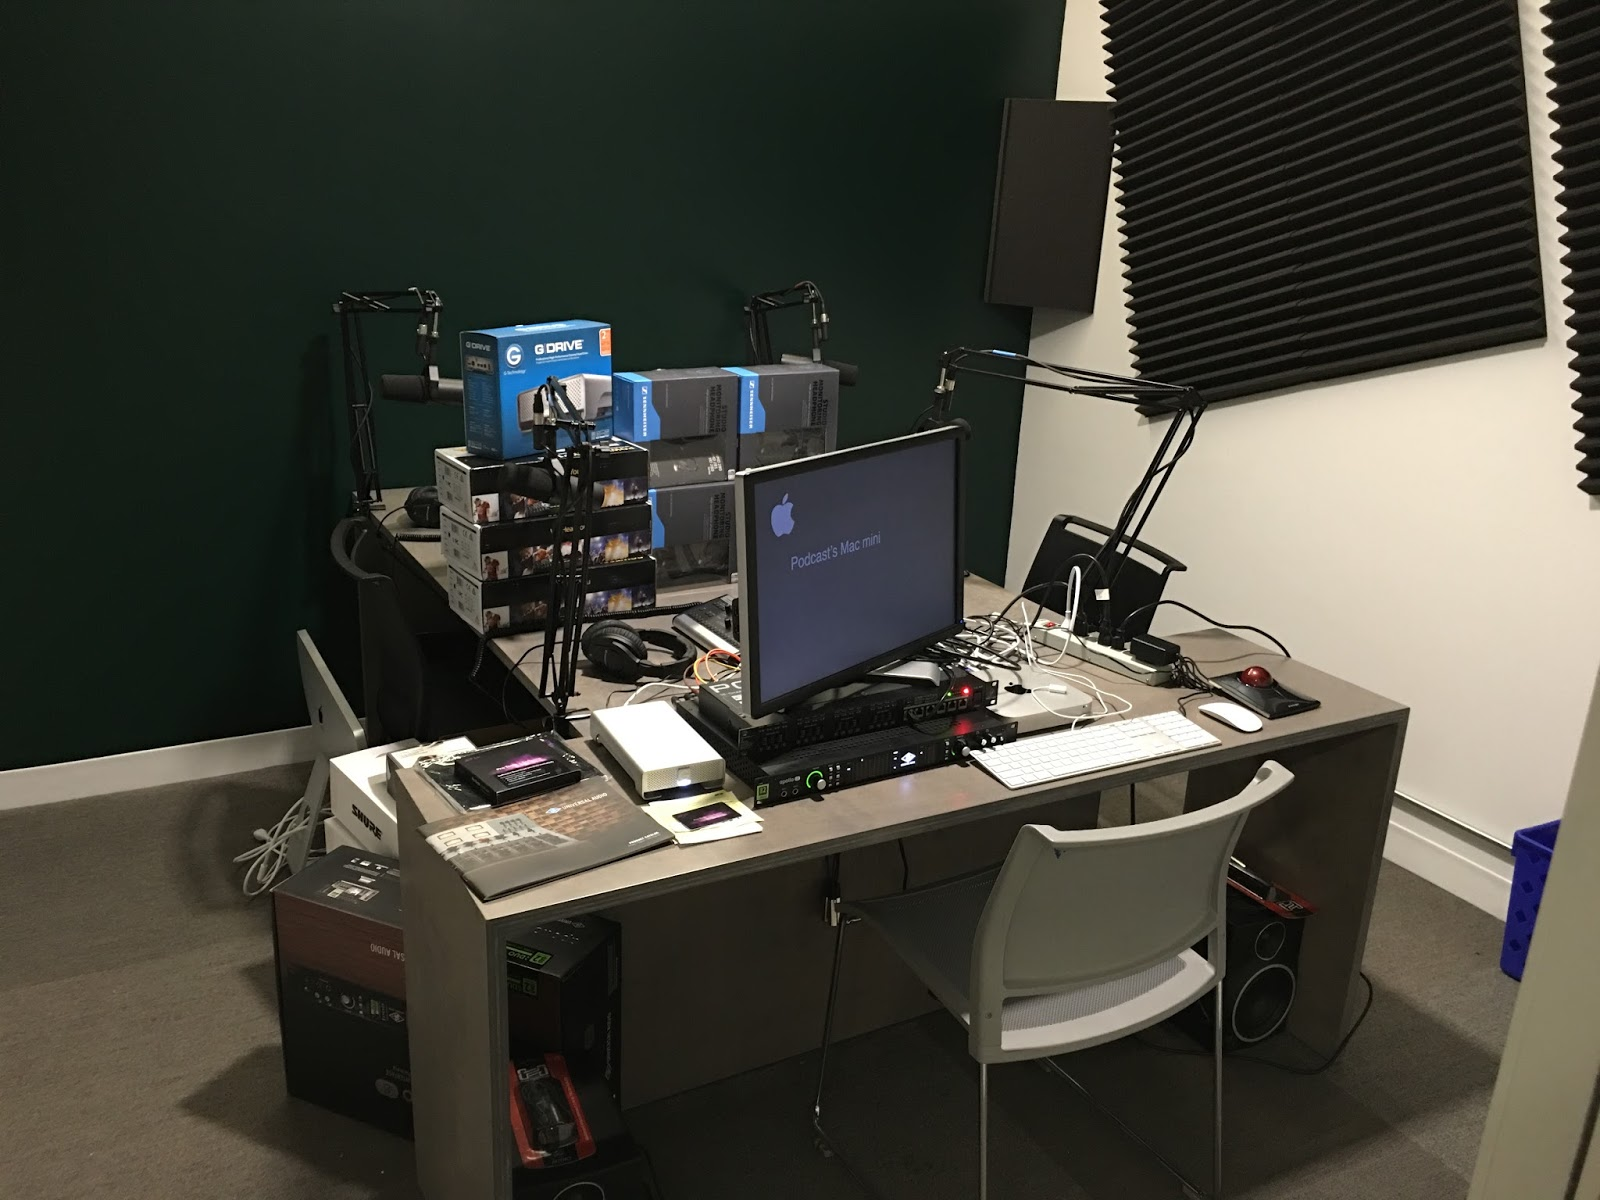 hindsight new parkergale podcast studio at 1871 coming soon